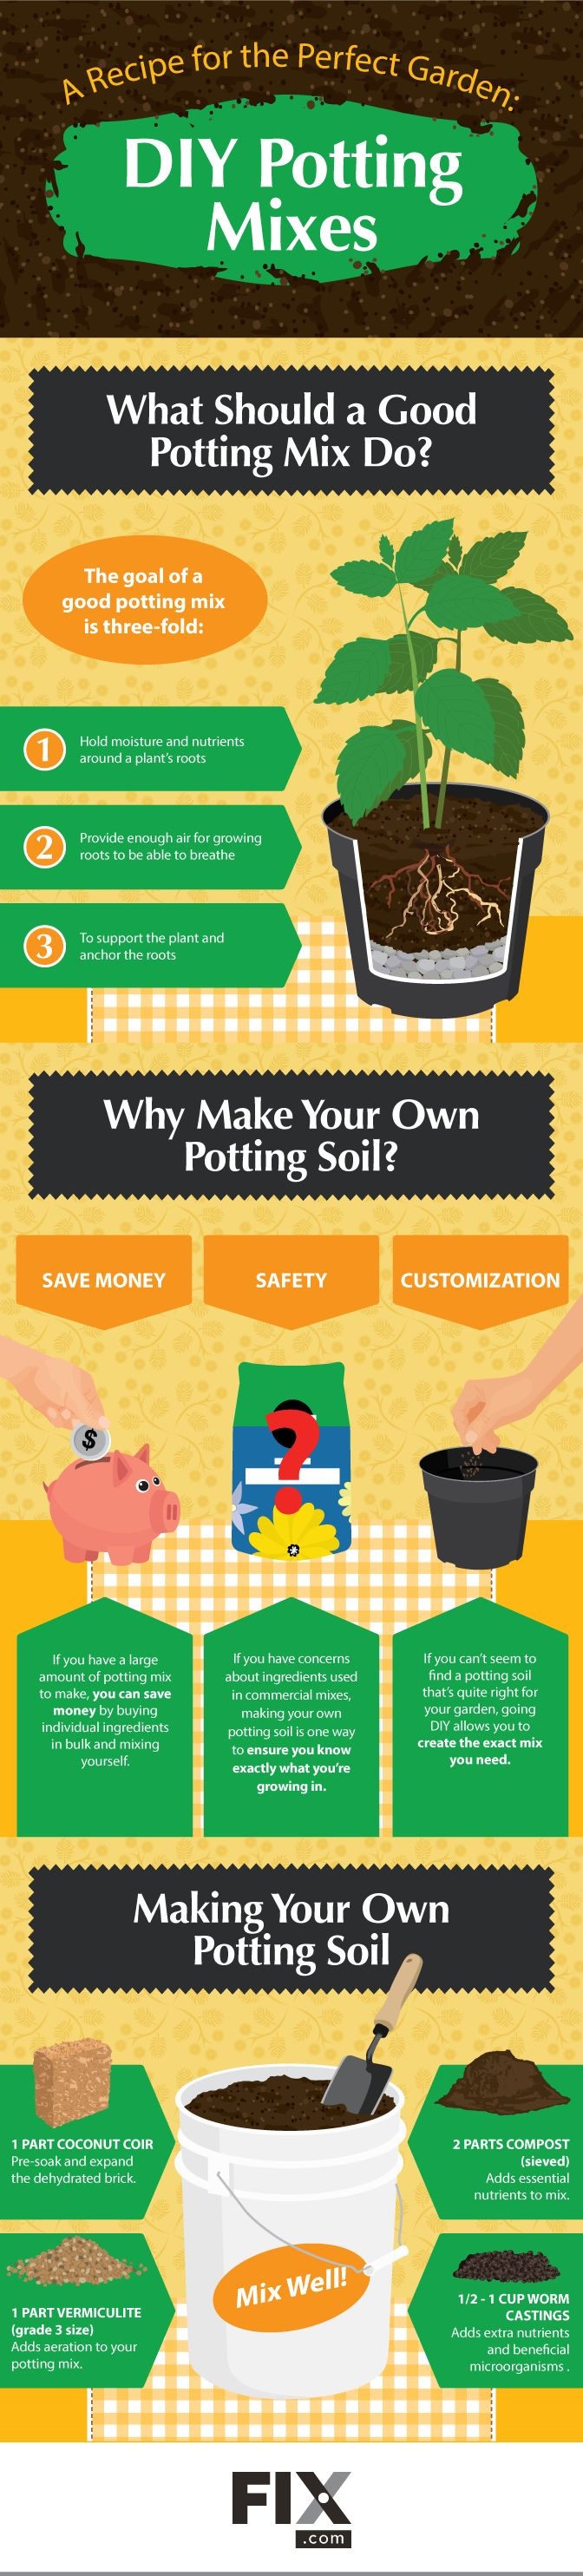 [Infographic] How to Make Your Own Potting Soil Mix for A Beautiful Container Garden